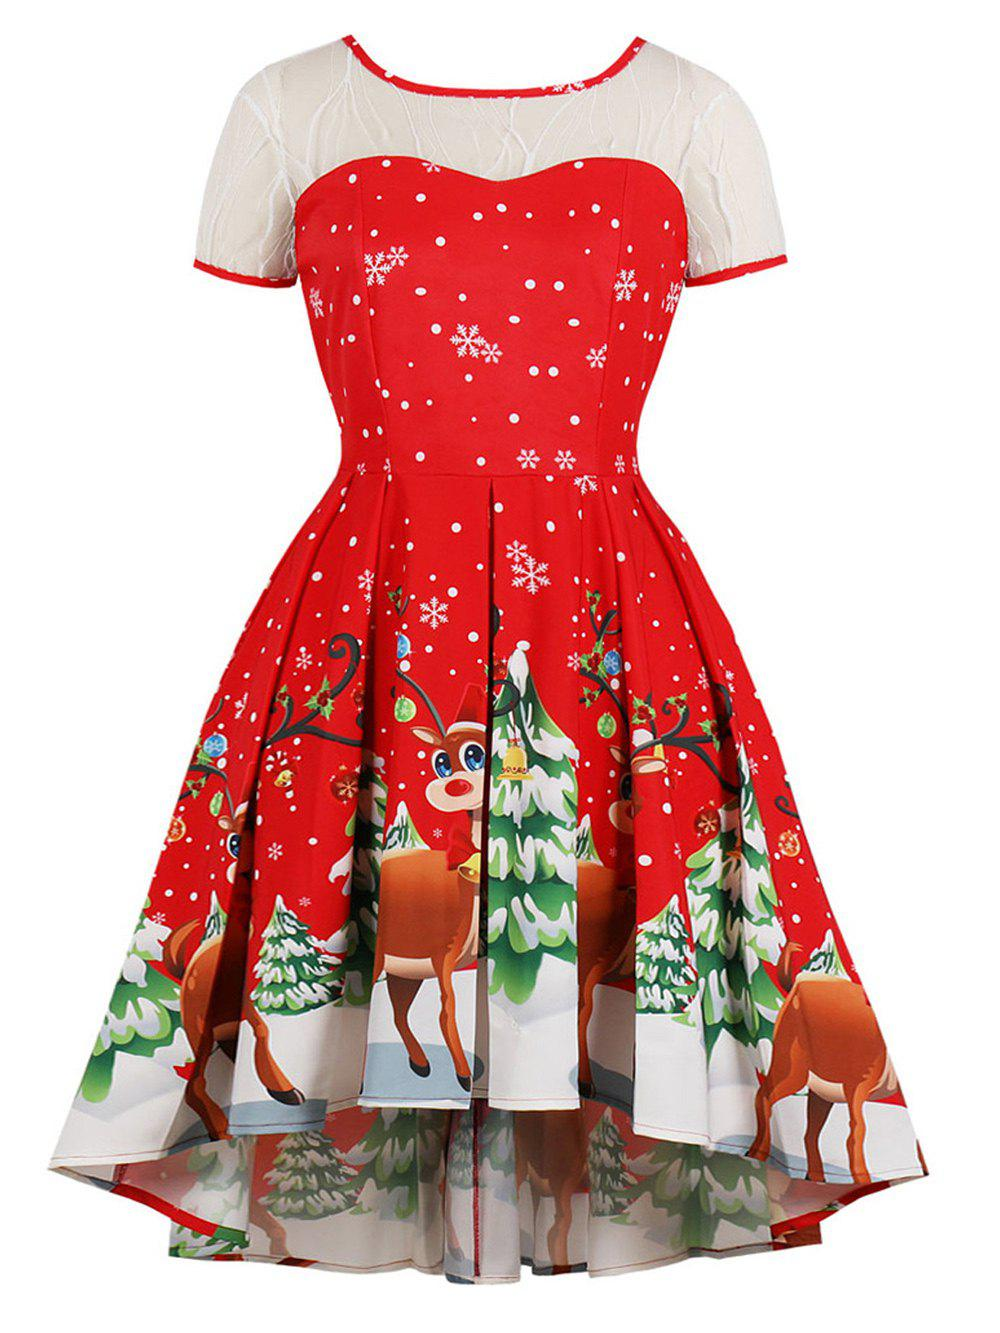 Fancy Hepburn Vintage Series Women Dress Spring And Summer Round Neck Christmas Printing Lace-stitching Design Short Sleeve Corset Dress